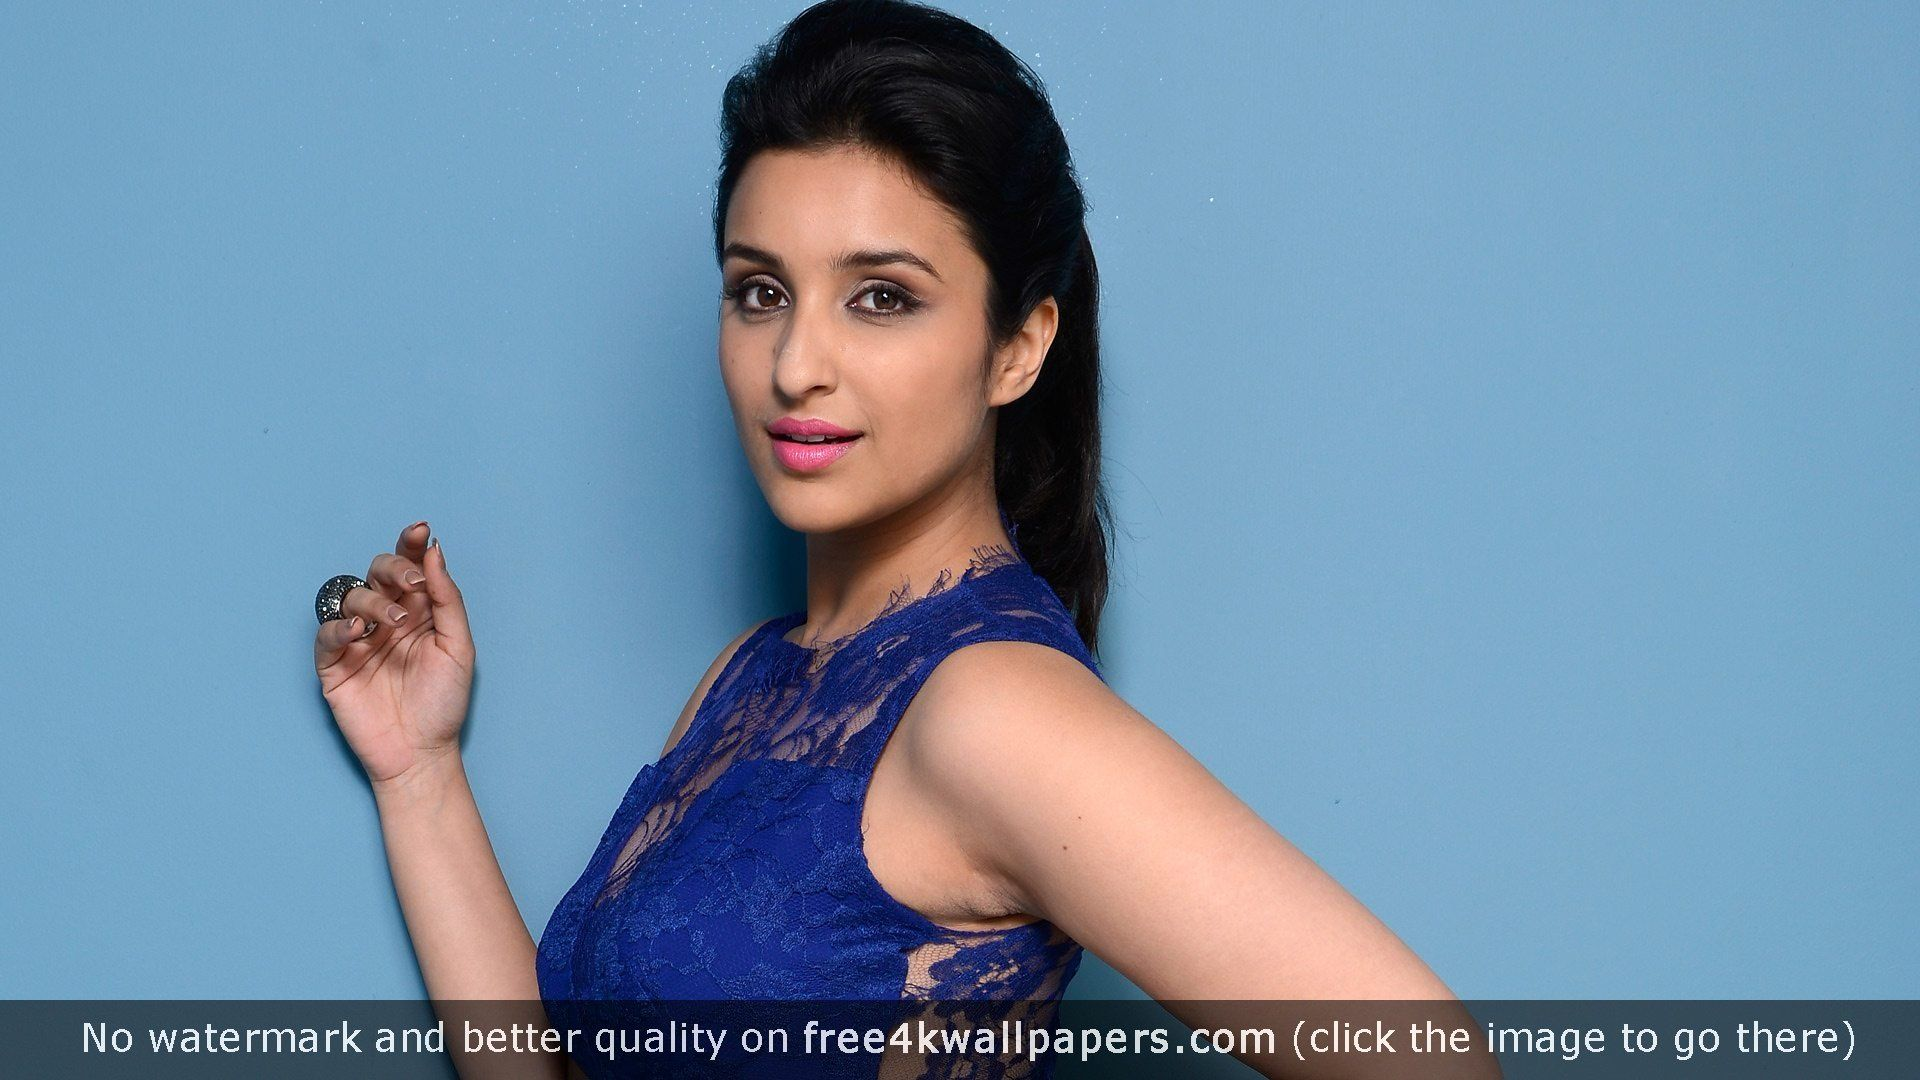 Bollywood actres parineeti chopra 4k or hd wallpaper for - Actress wallpaper download for mobile ...